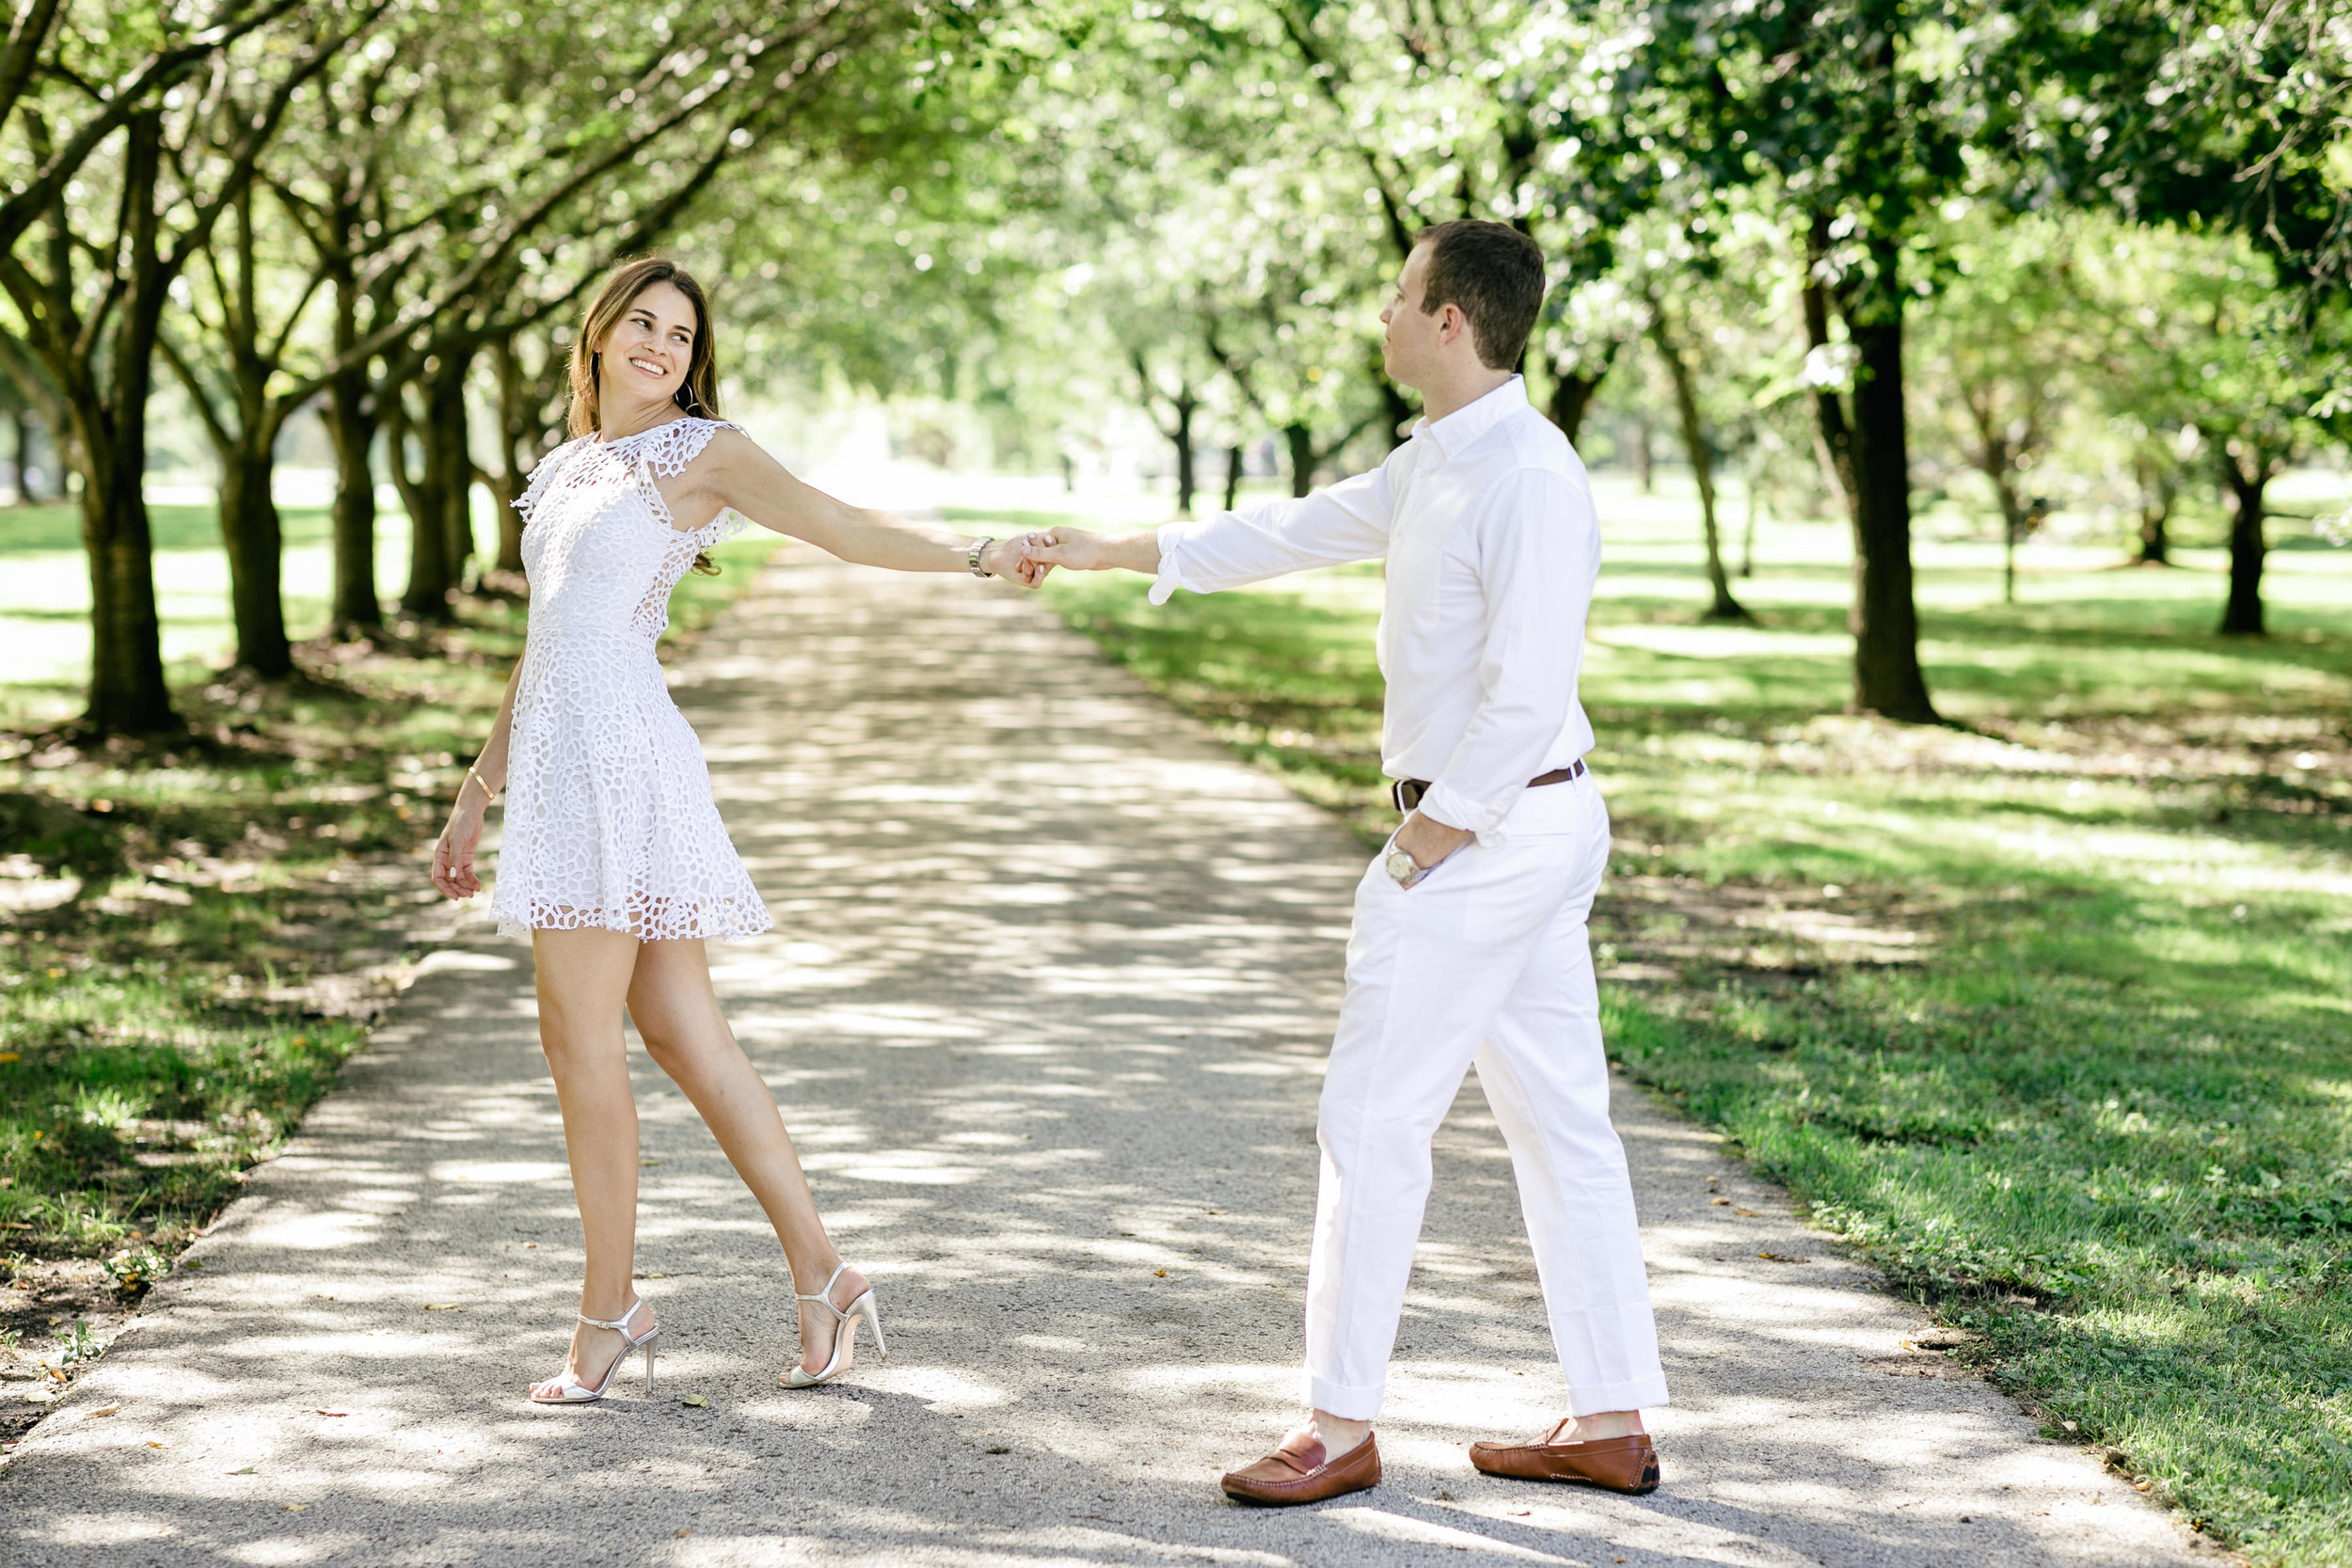 photography-family-natural-candid-engaged-fairmount-philadelphia-wedding-horticultural center-modern-lifestyle-16.JPG